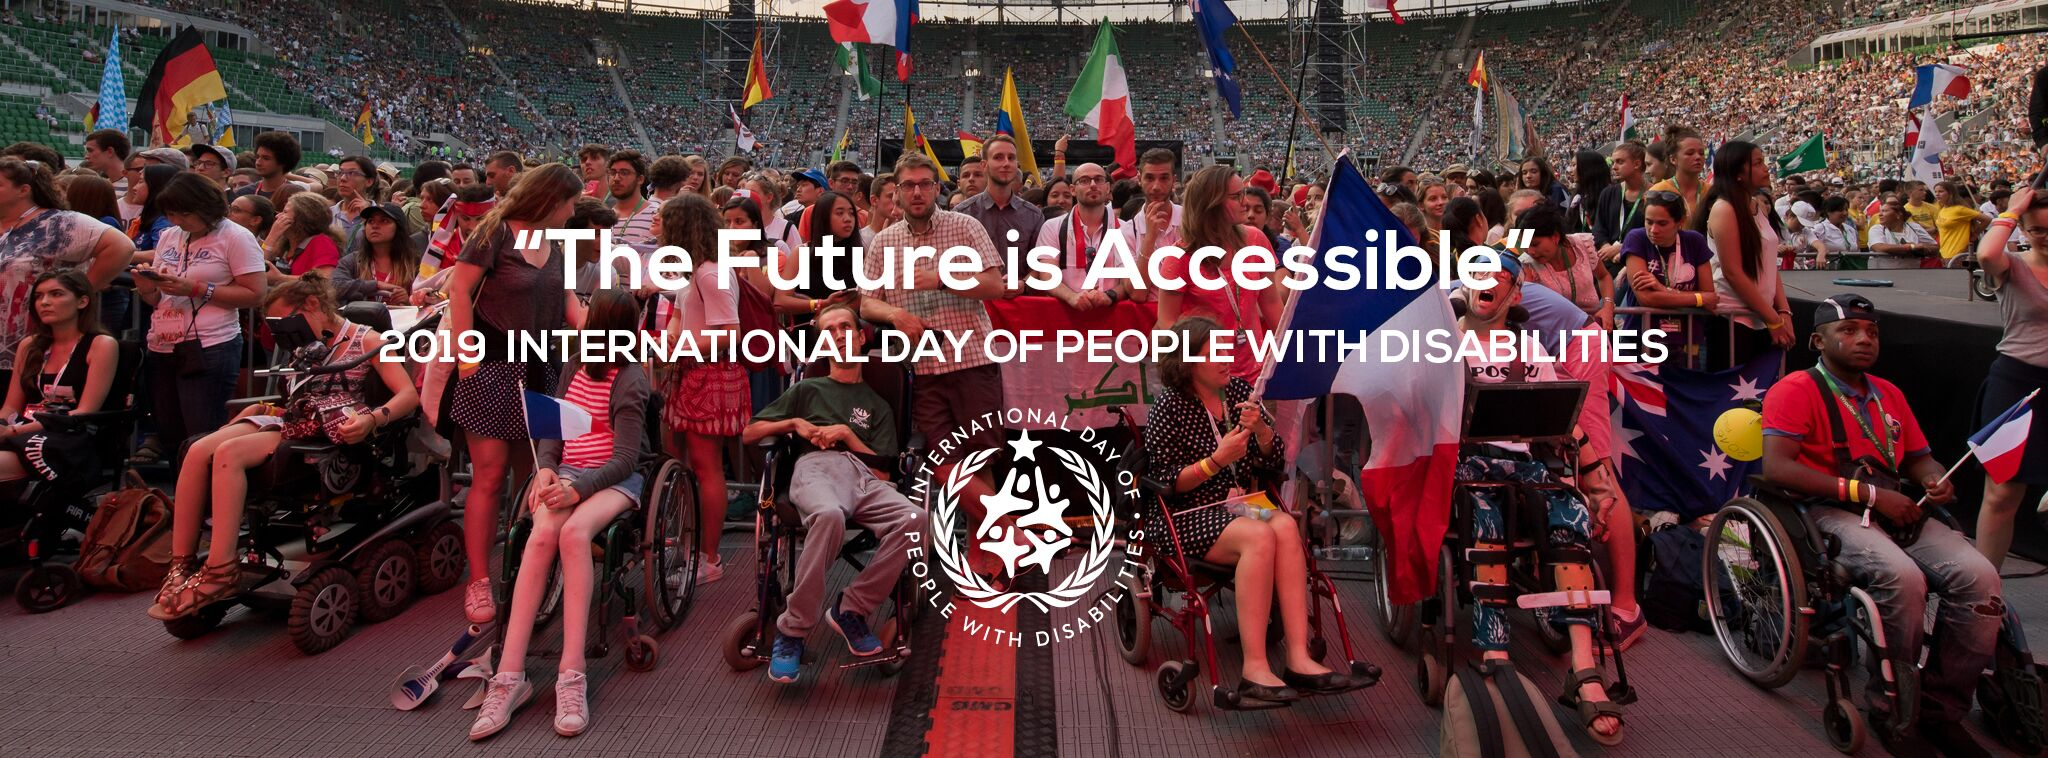 Photo of The Future is Accessible 2019 International Day of People with Disabilities